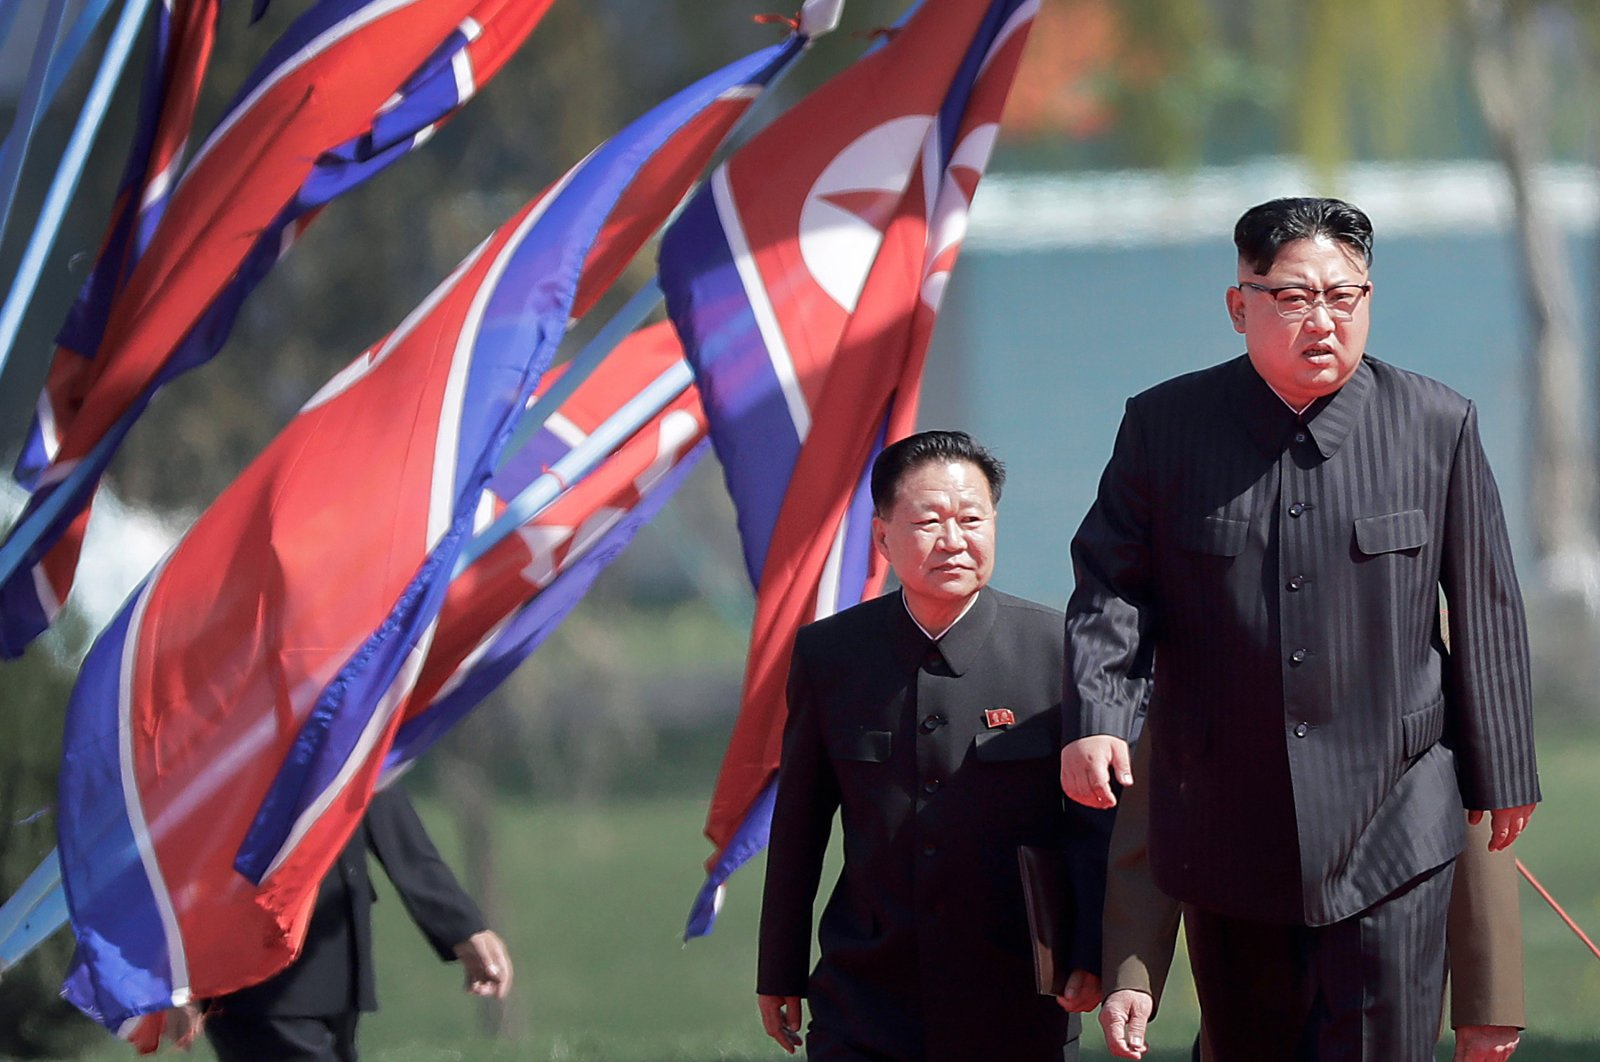 In this April 13, 2017 file photo, North Korean leader Kim Jong Un, right, and Choe Ryong Hae, vice-chairman of the central committee of the Workers' Party, arrive for the official opening of the Ryomyong residential area, in Pyongyang, North Korea. (AP Photo)